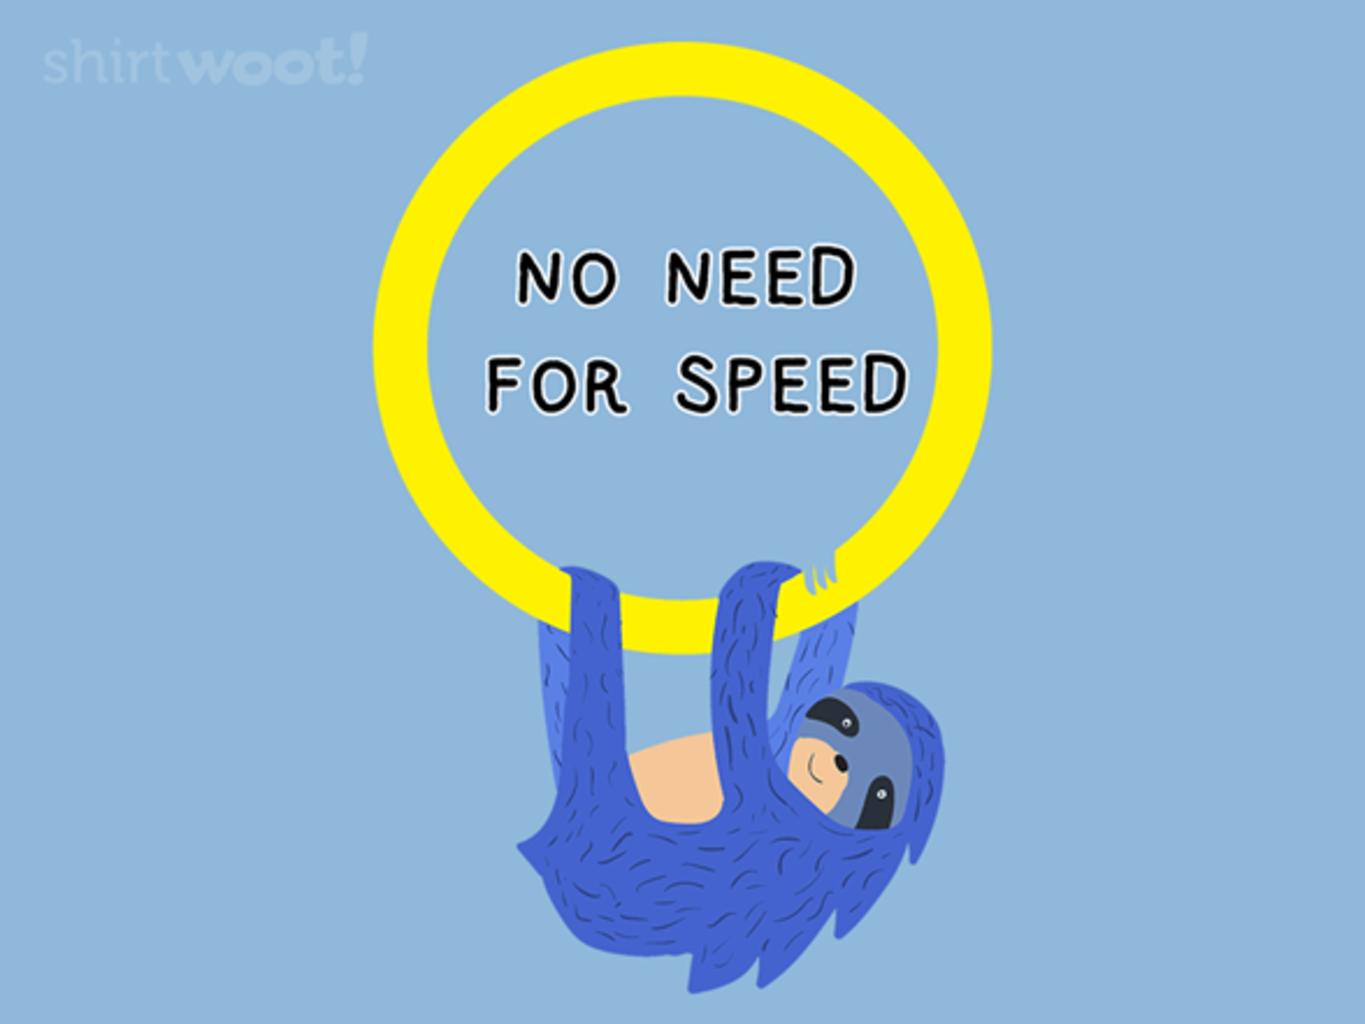 Woot!: No Need for Speed - $8.00 + $5 standard shipping